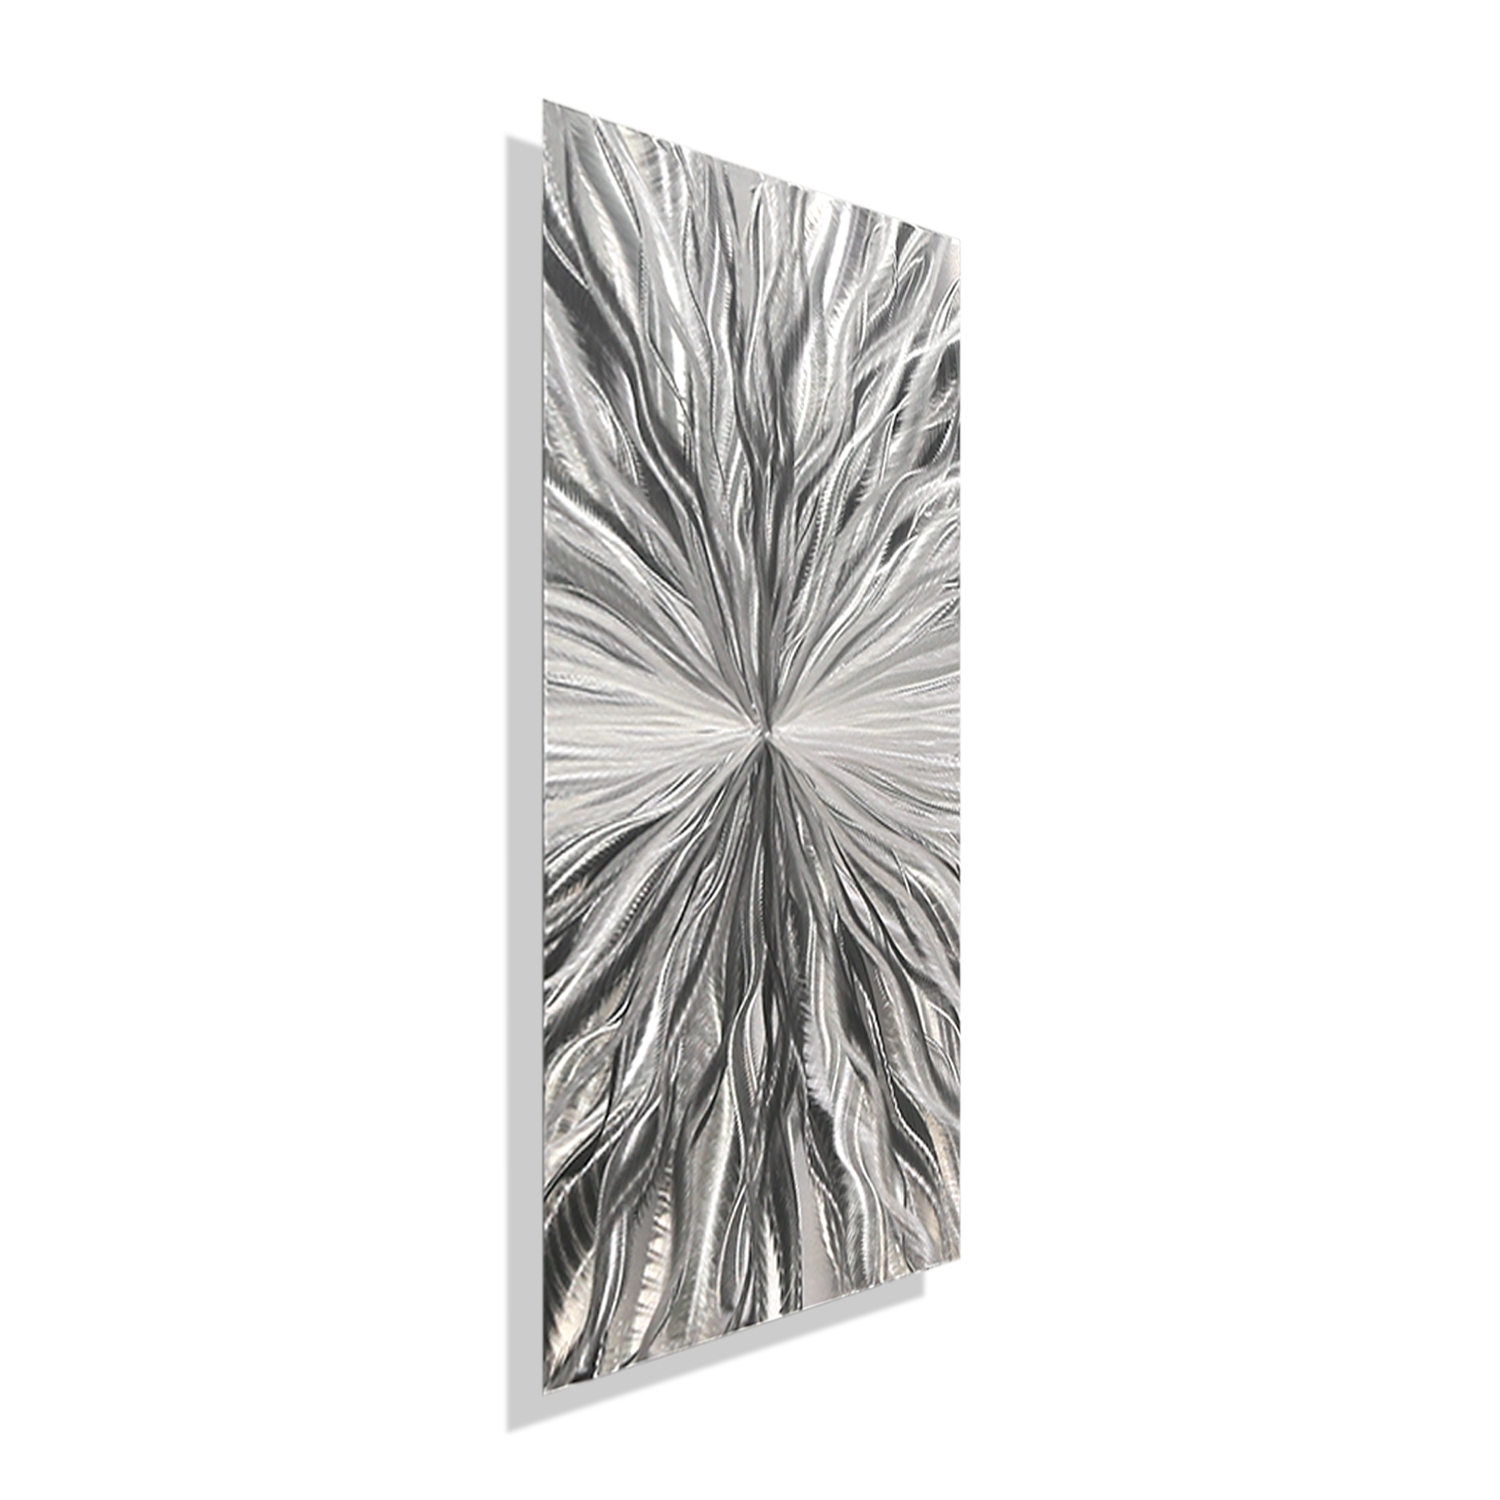 Vitality Solo – Silver Metal Wall Art – Single Panel Wall Décor Within Cheap Metal Wall Art (View 19 of 20)